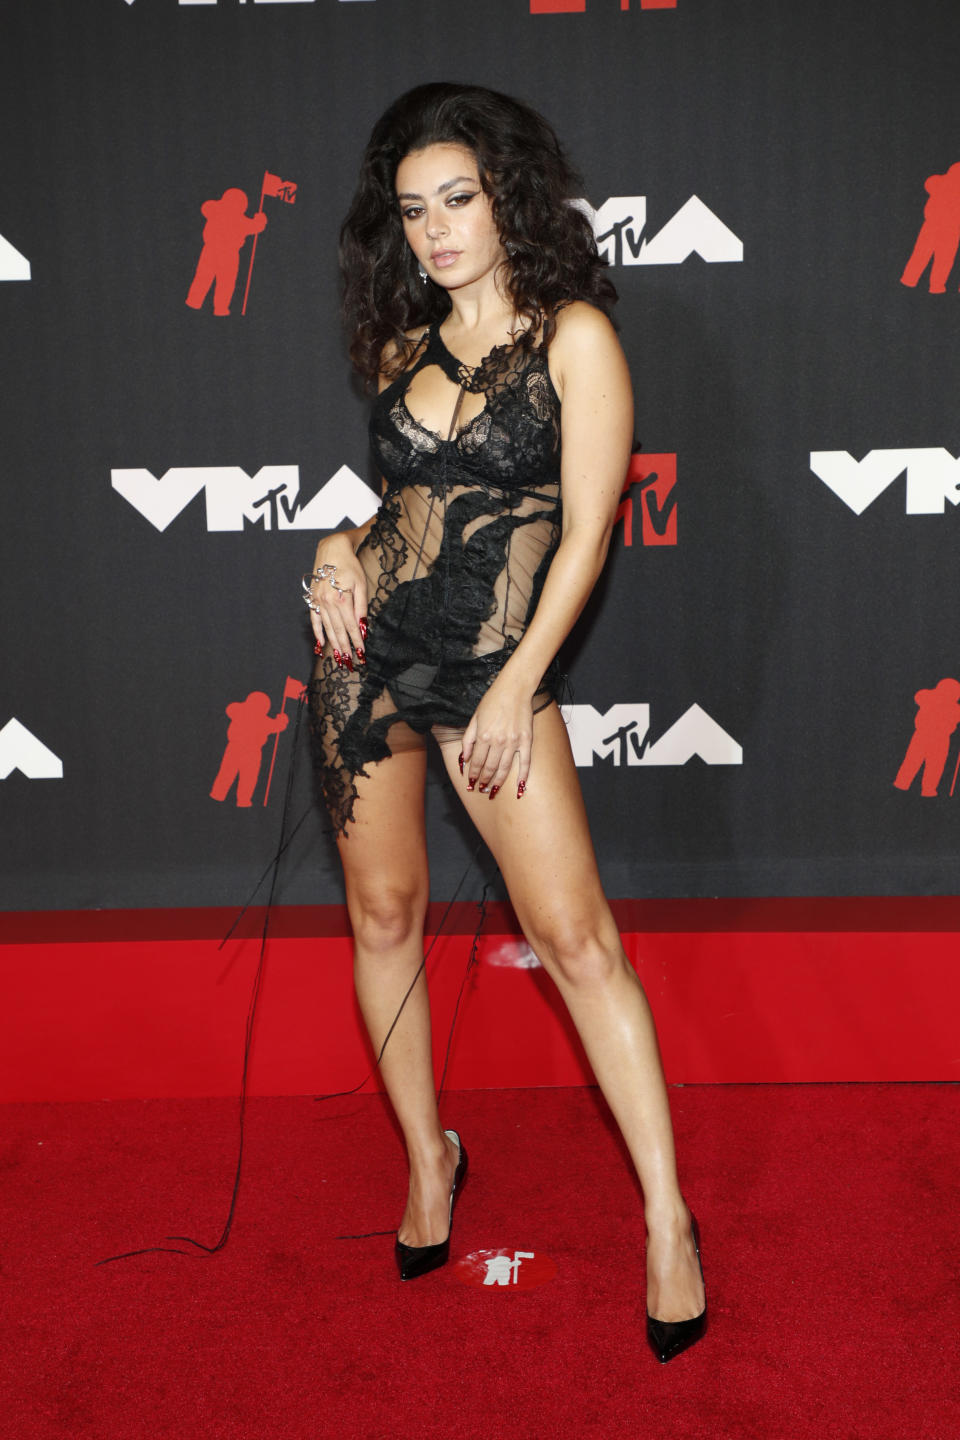 Charli XCX attends the 2021 MTV Video Music Awards